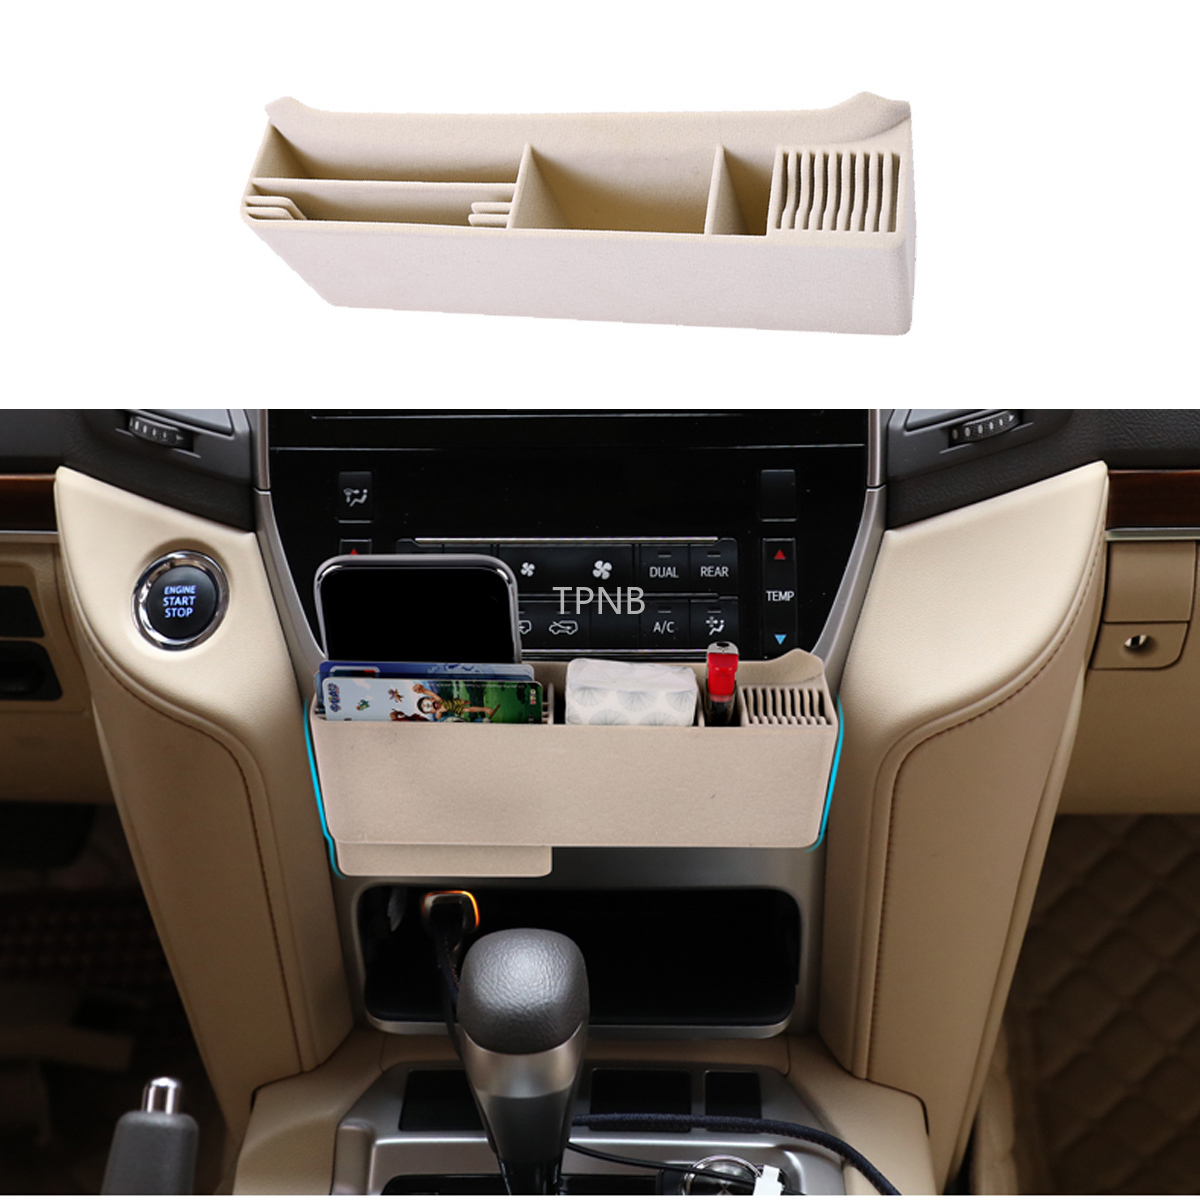 Car Central Control Storage Box <font><b>d</b></font> Frame for Toyota Land Cruiser 200 2016 2017 2018 <font><b>2019</b></font> Accessories image